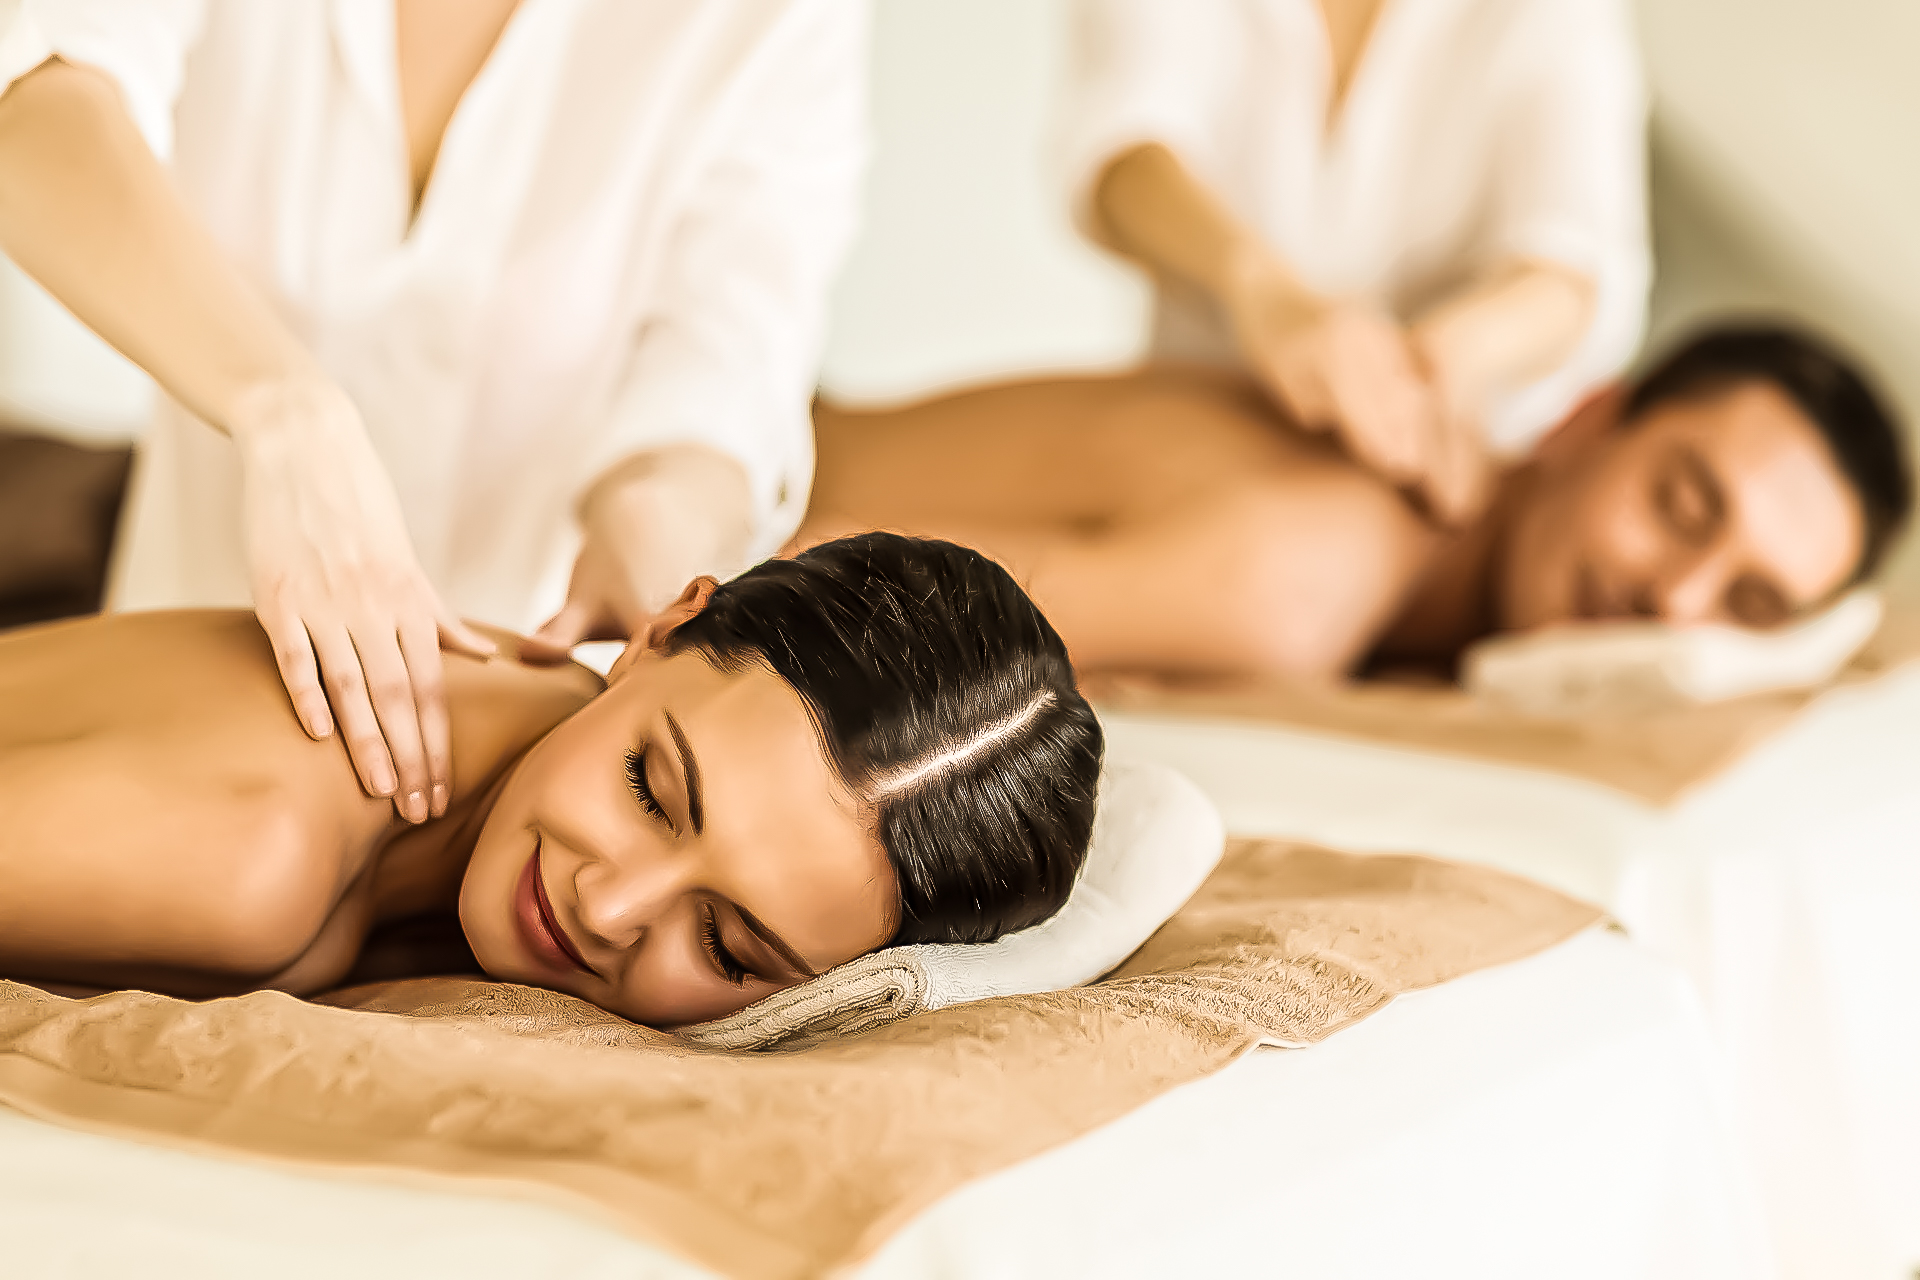 Couples Massage Therapy - Be Well Holistic Massage Wellness Center